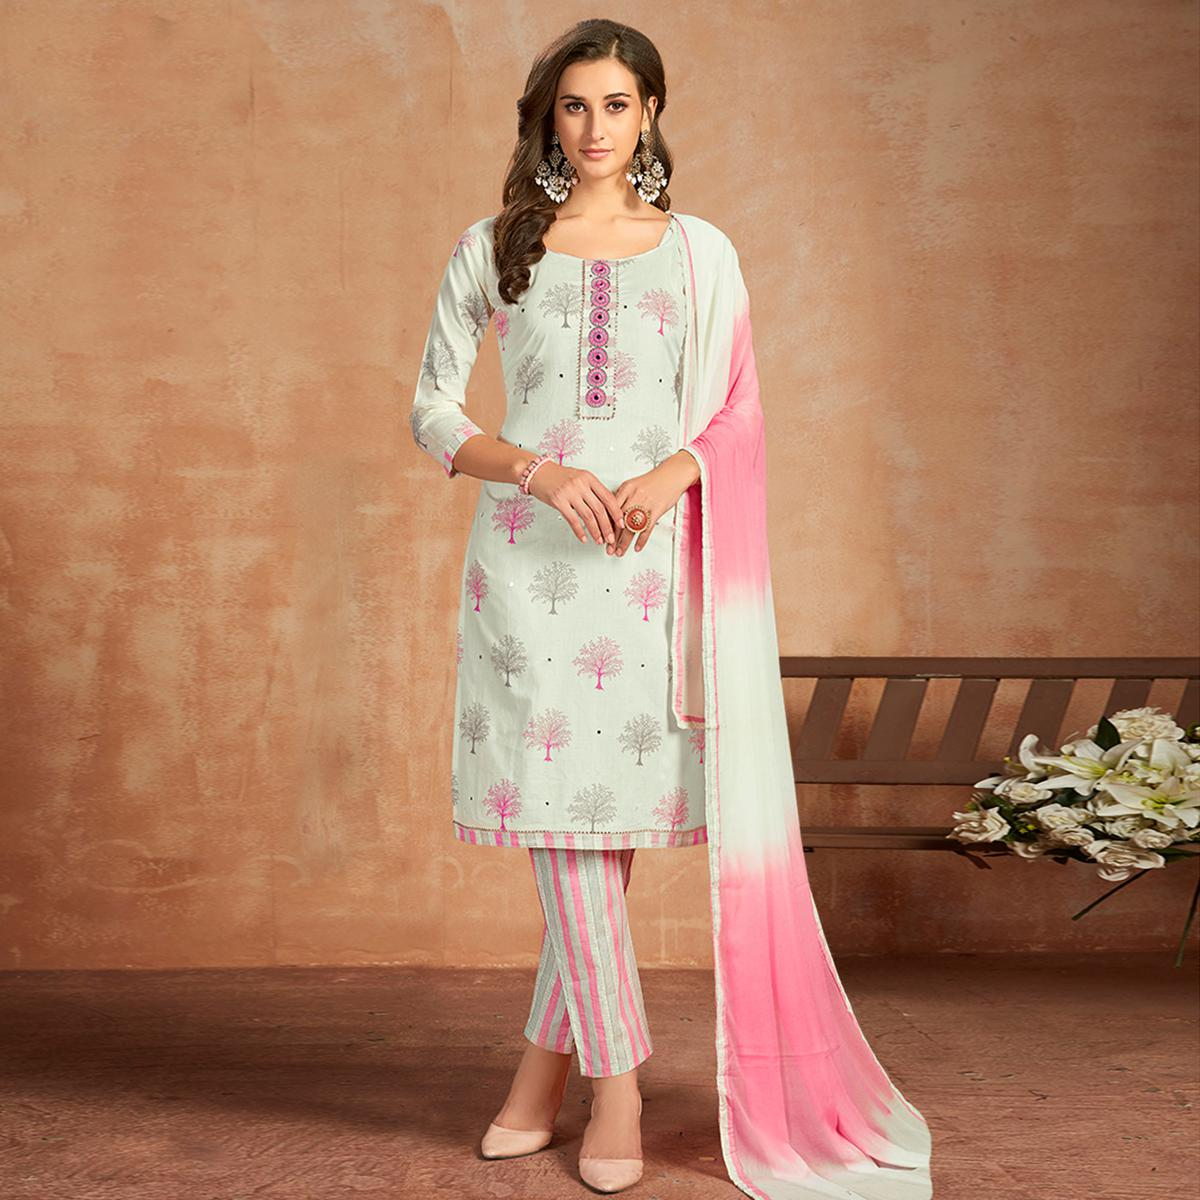 Ravishing White Colored Partywear Embroidered Pure Cotton Dress Material